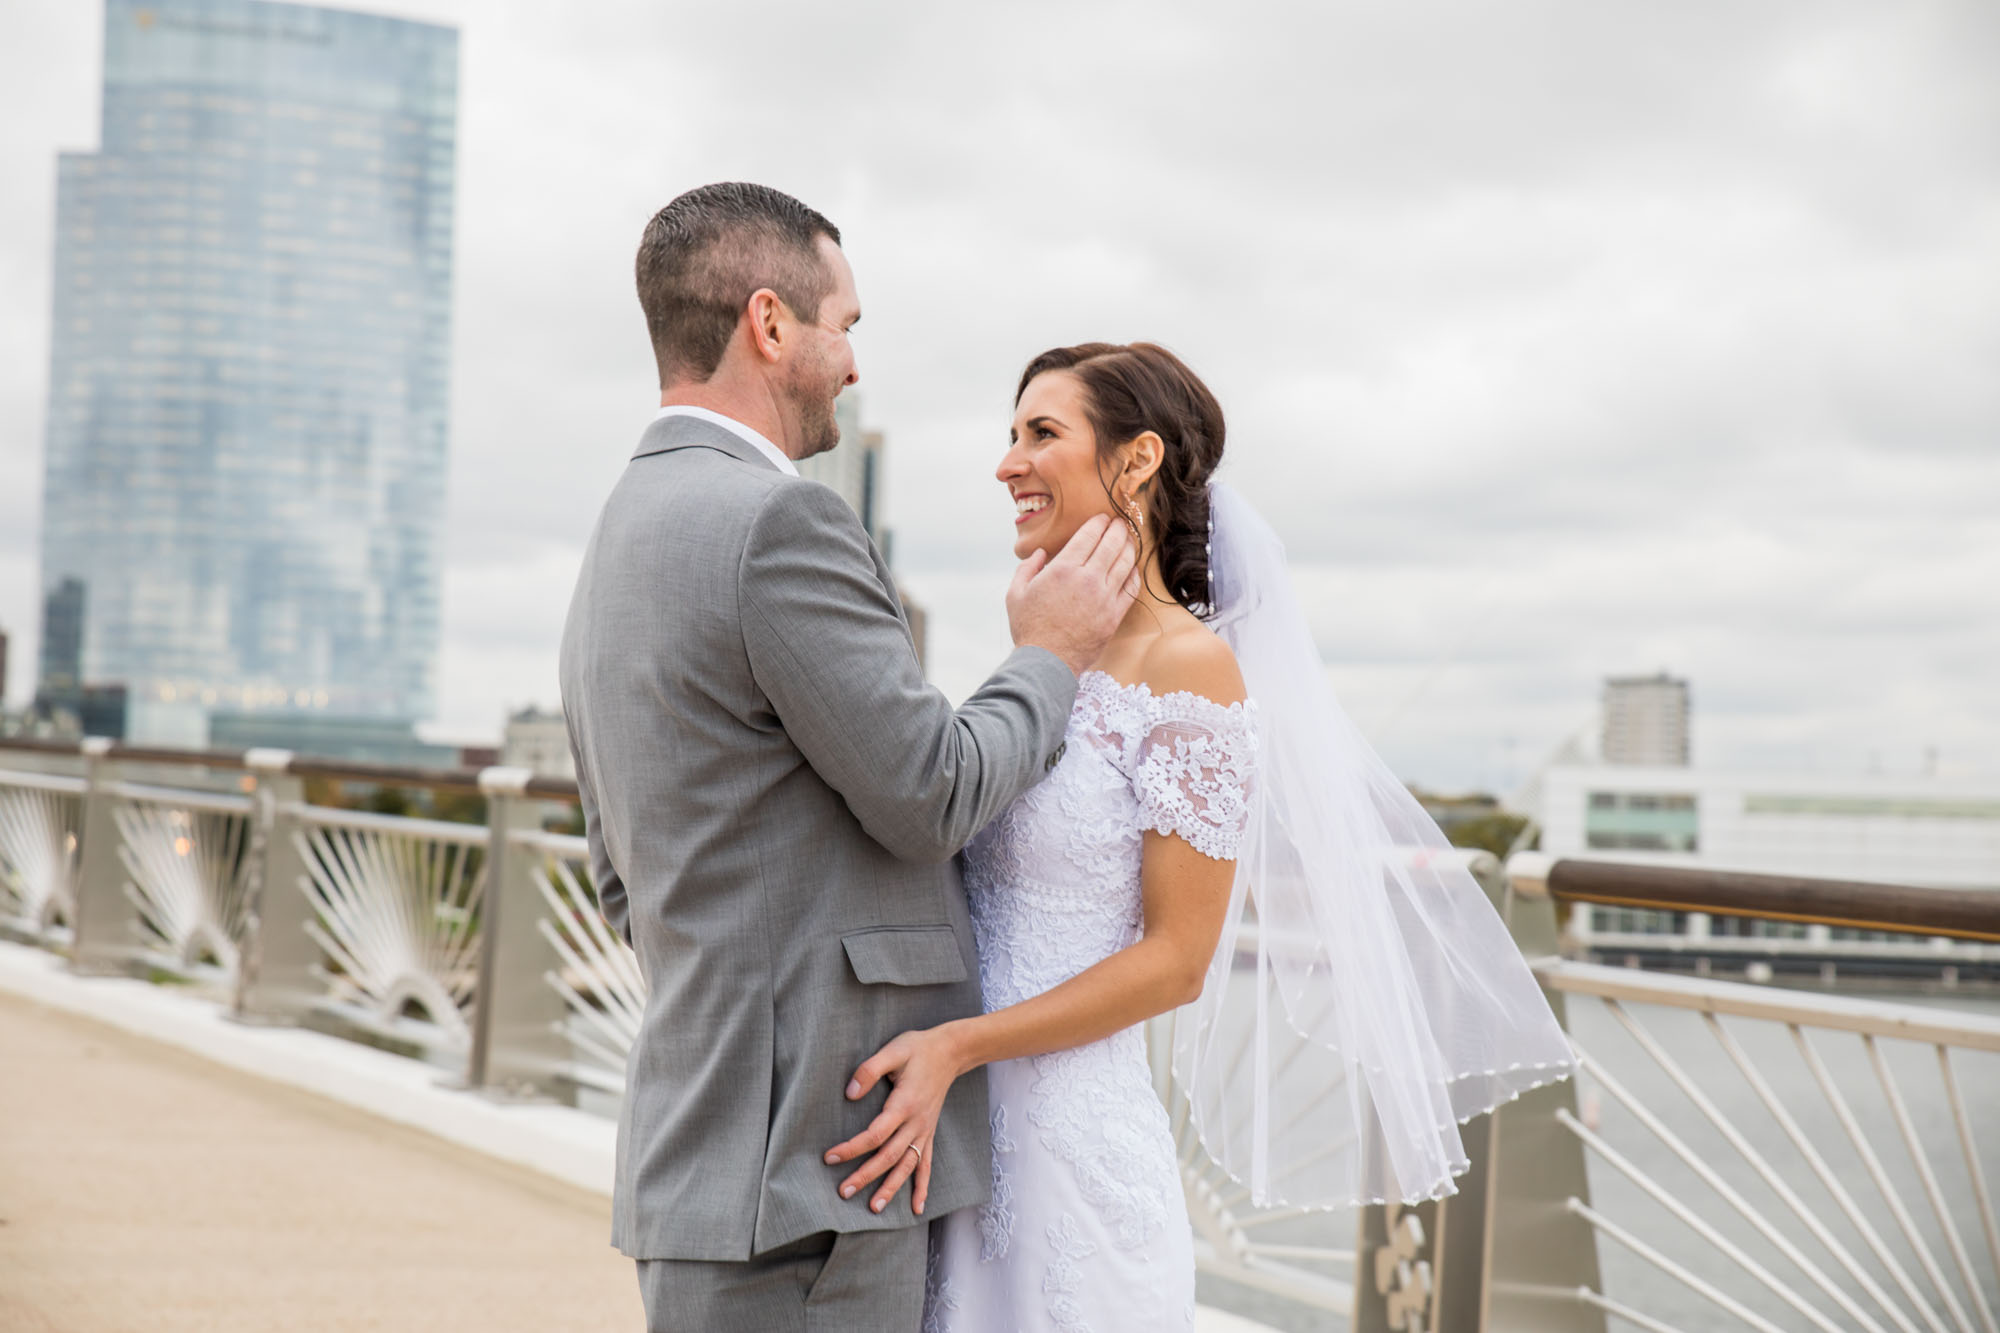 austin wedding photographer, studio k10, milwaukee wedding photographer